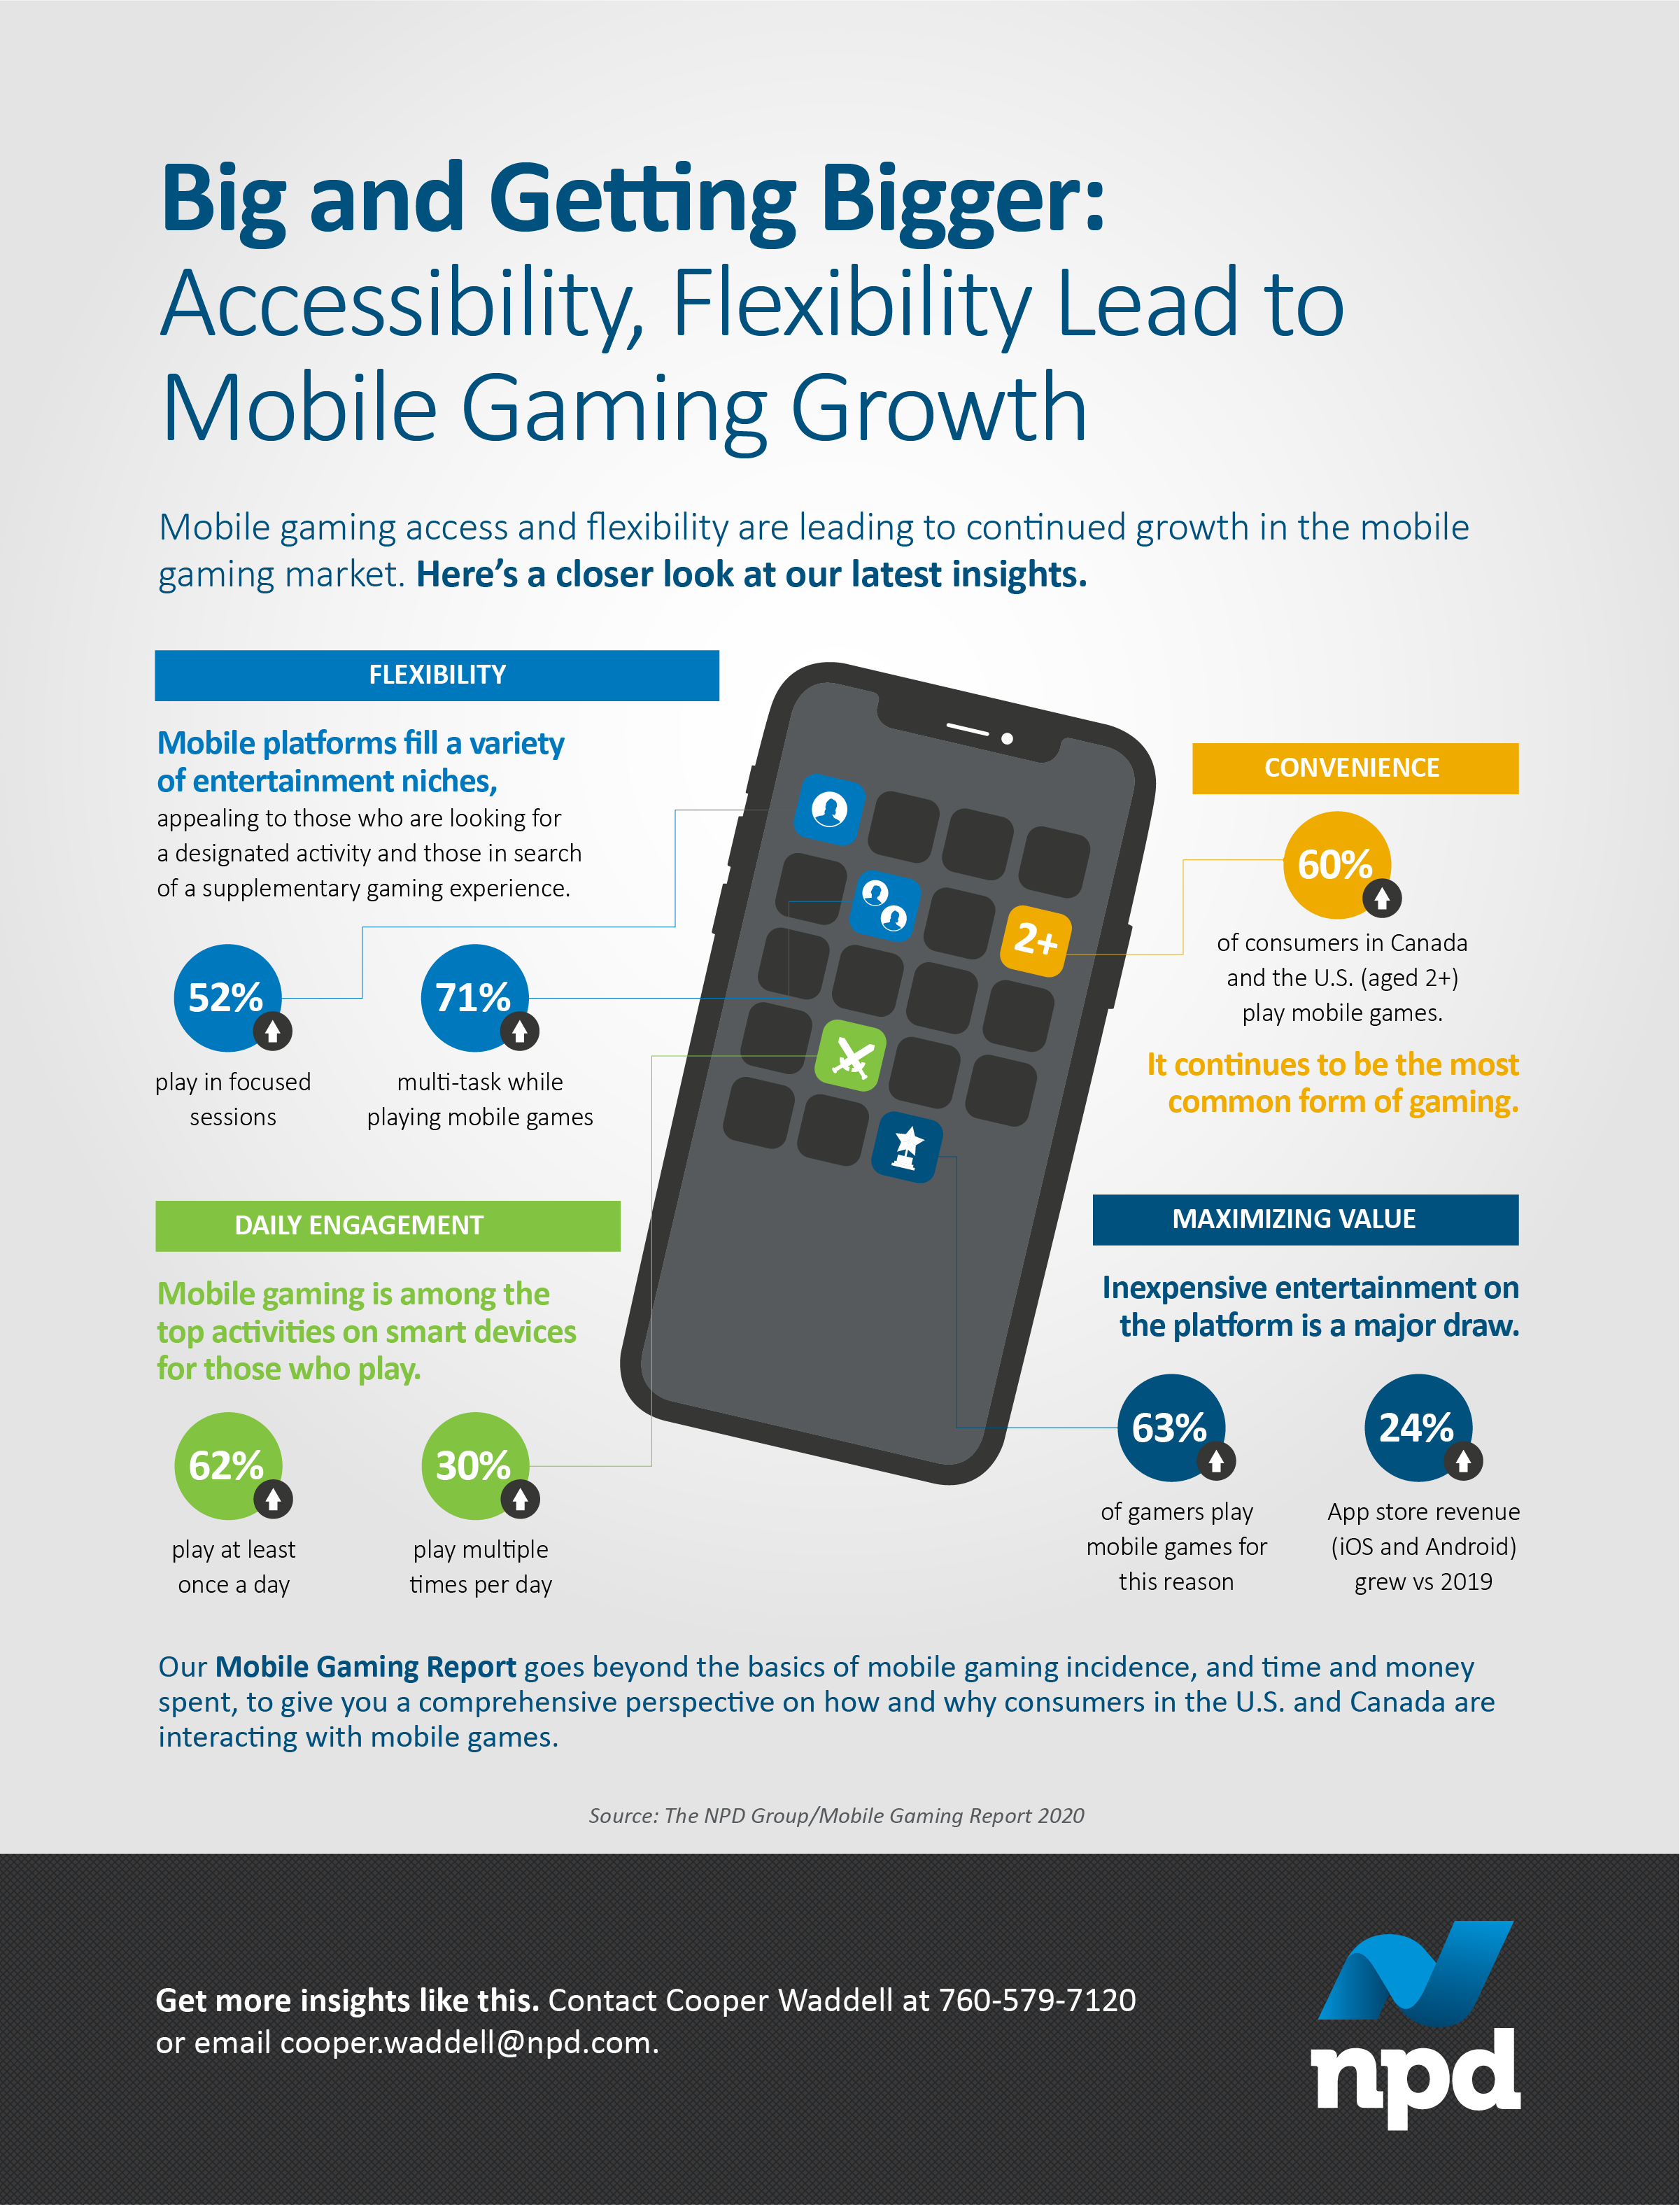 Mobile gaming access and flexibility are leading to continued growth in the mobile gaming market.